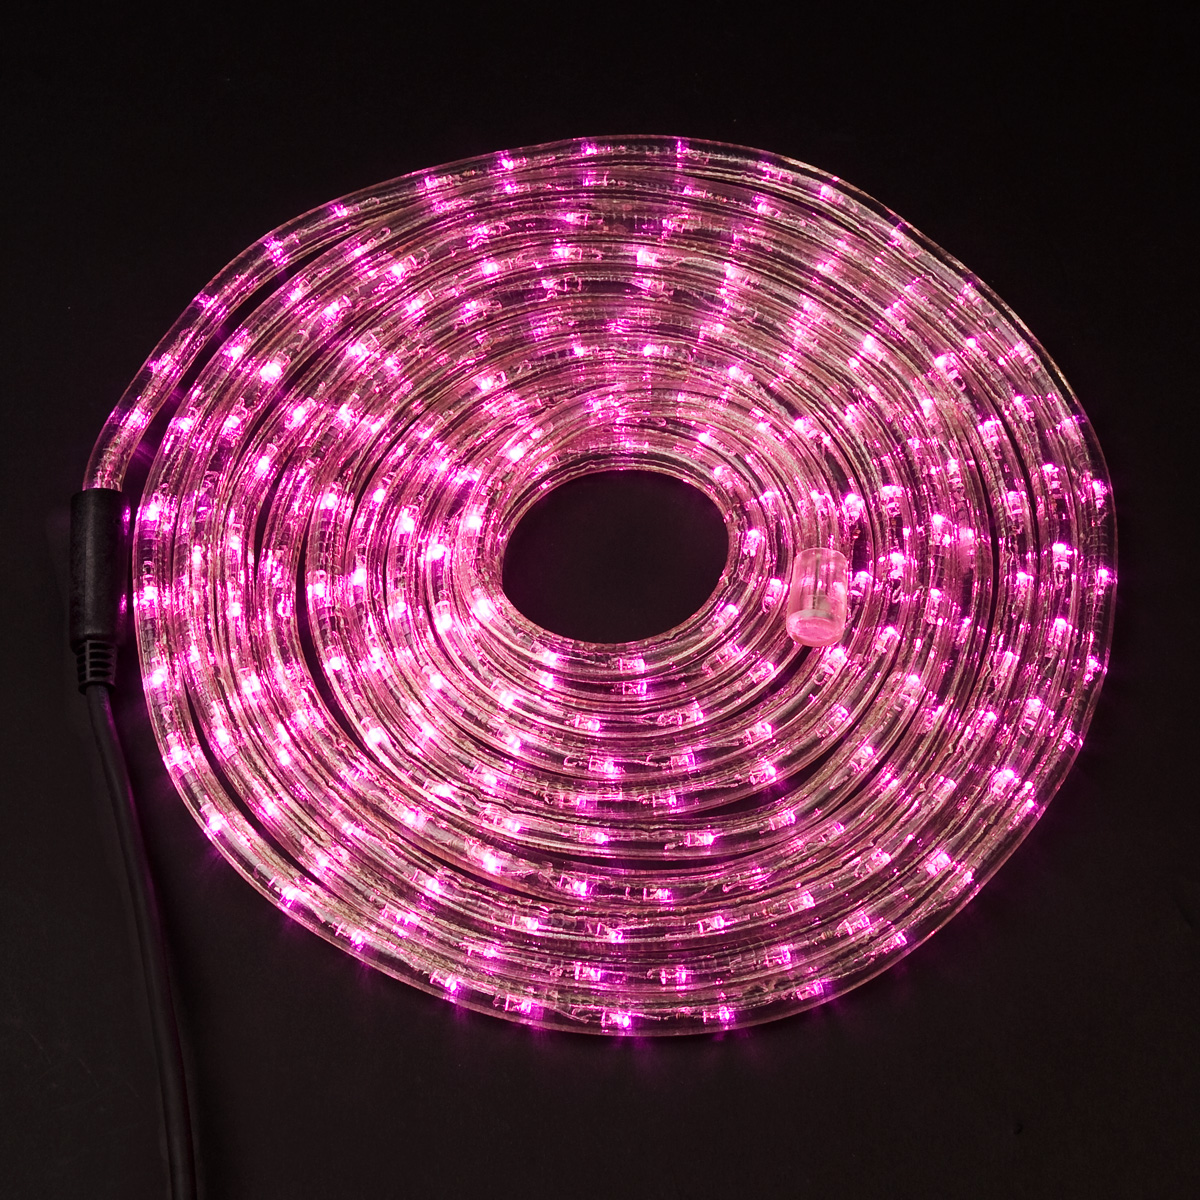 led lichtschlauch pink lila 6 meter lichterkette lichterschlauch ebay. Black Bedroom Furniture Sets. Home Design Ideas